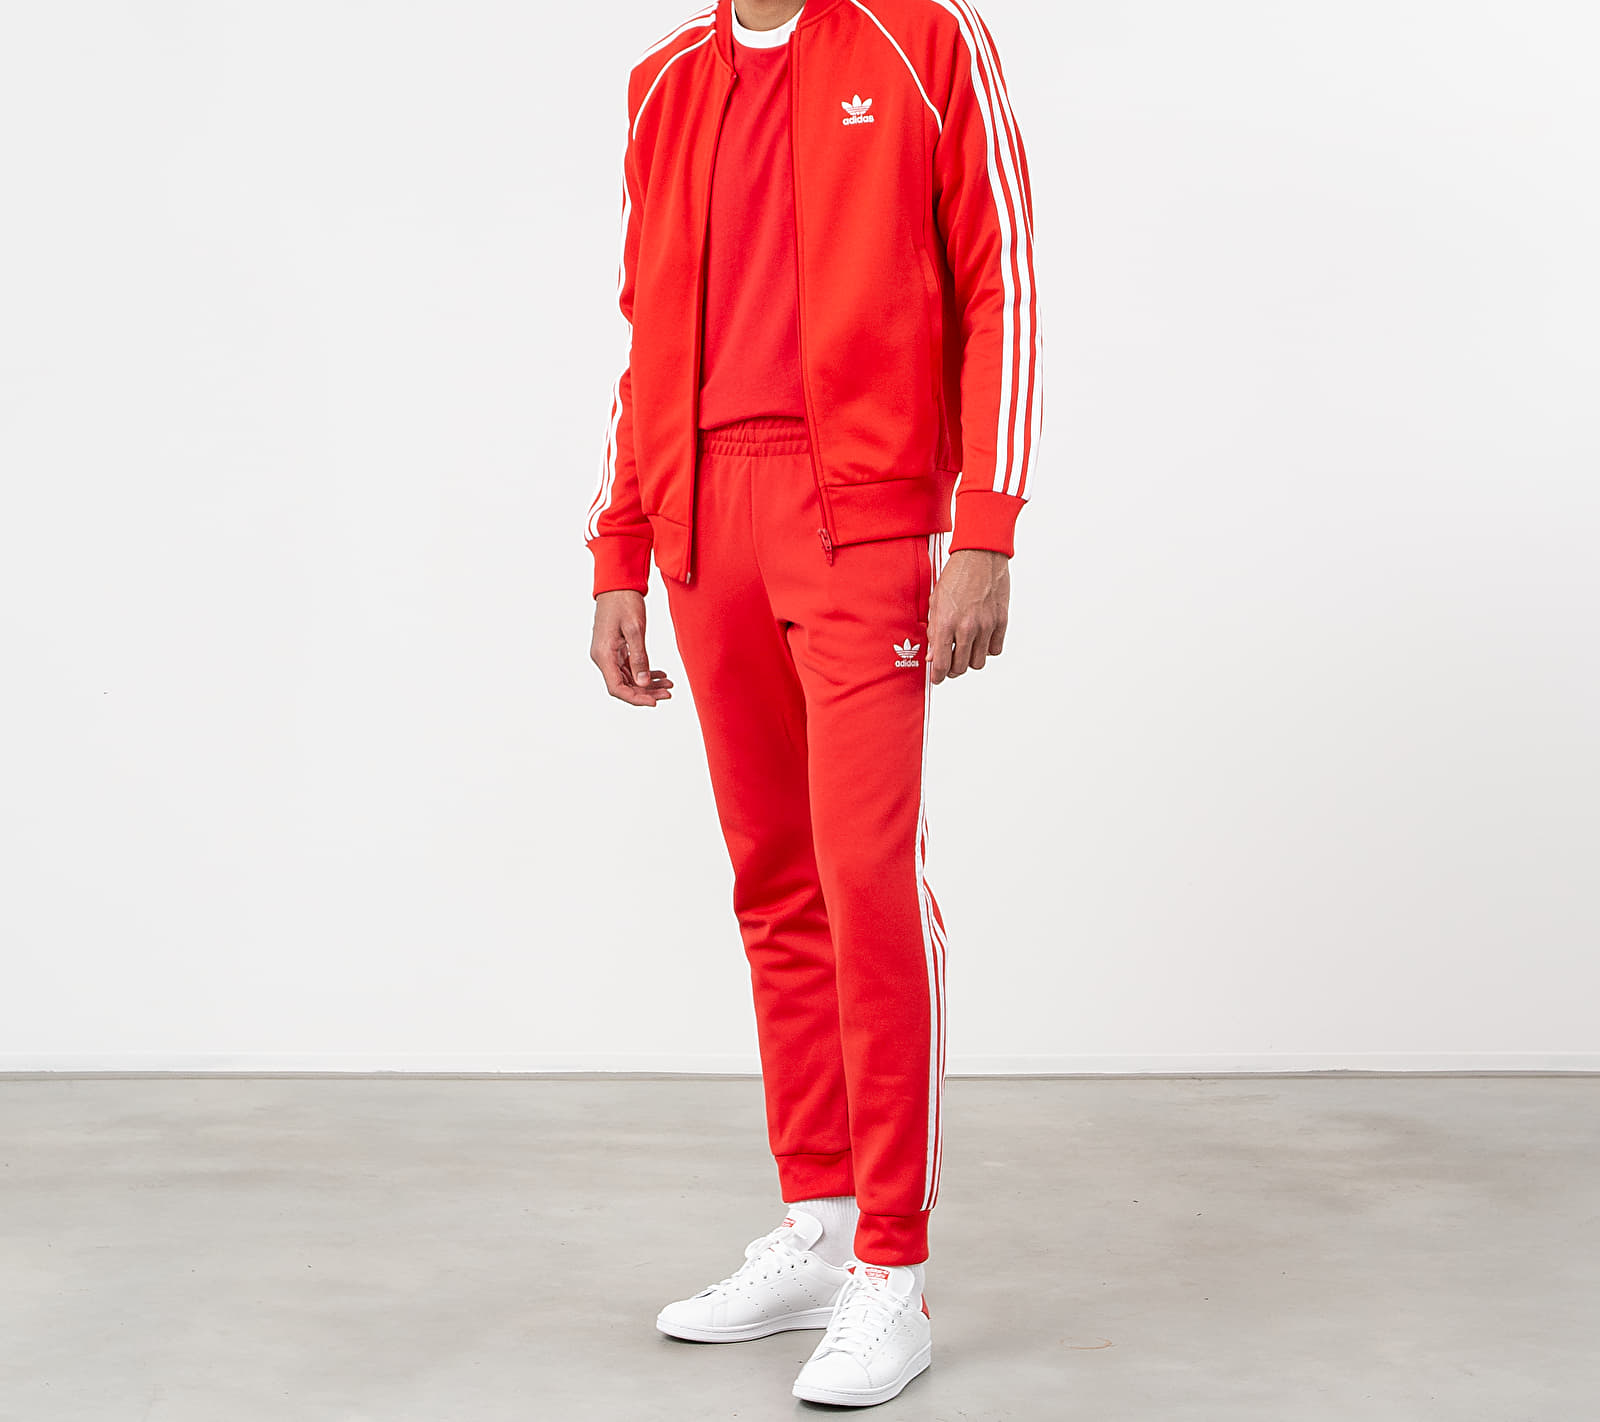 adidas Superstar Track Top Lush Red